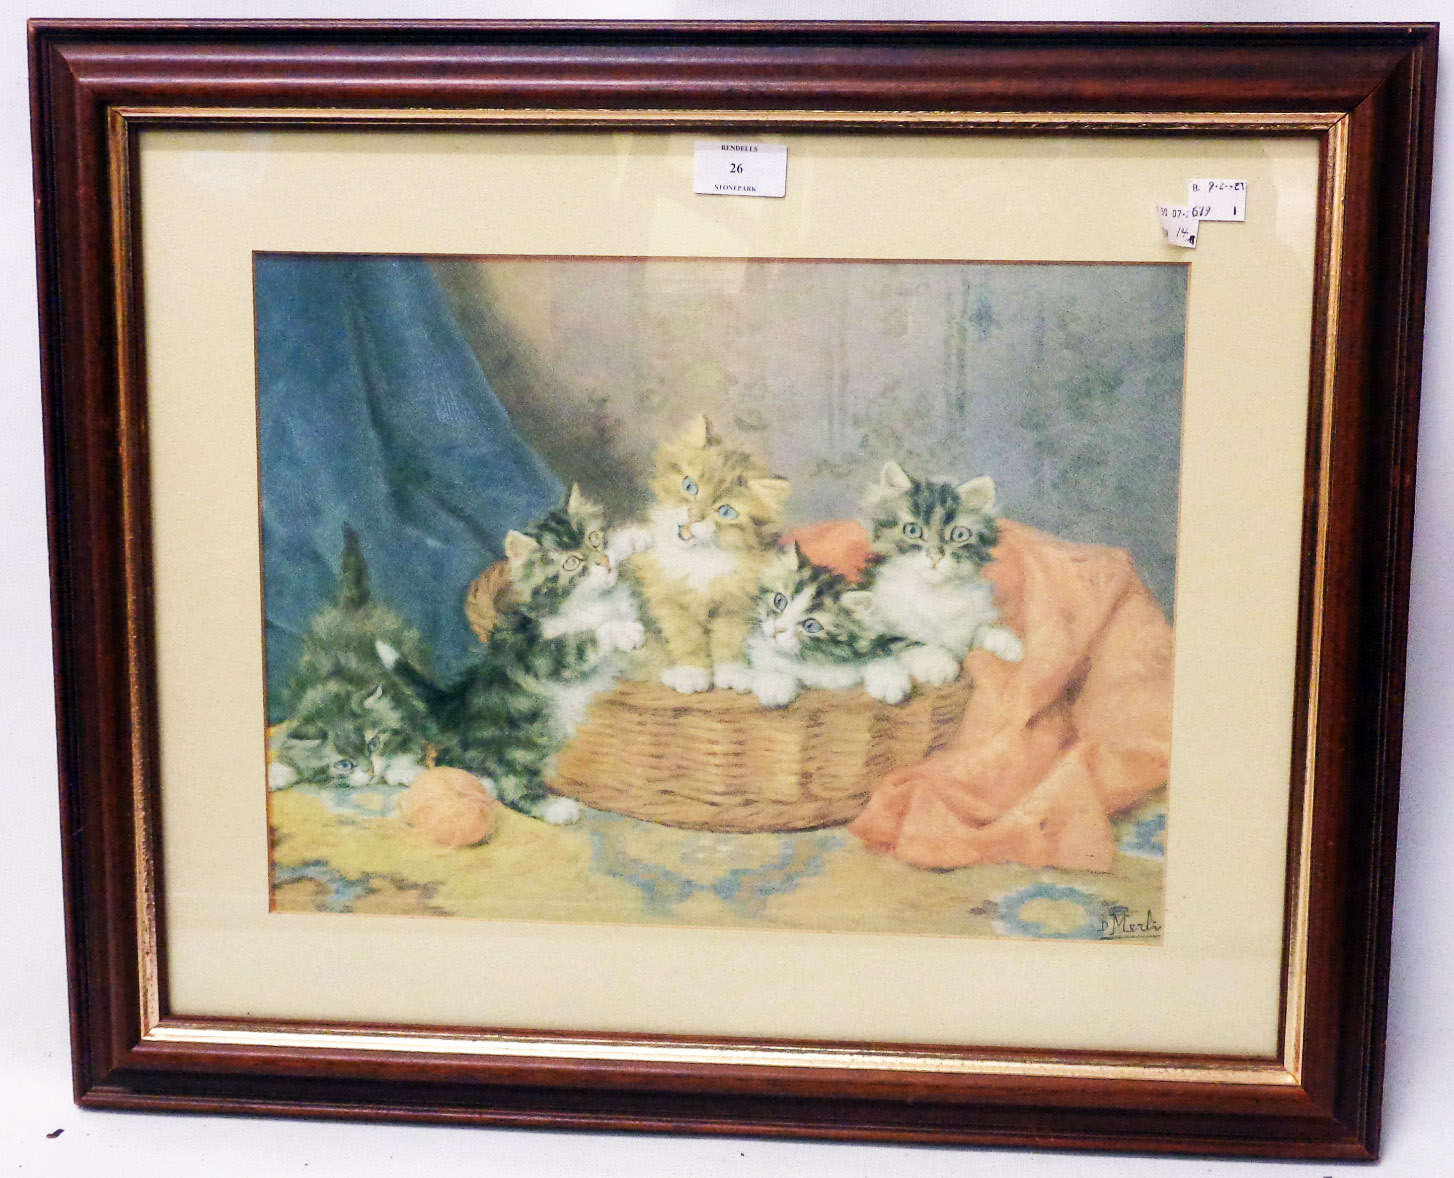 A framed coloured print, depicting kittens in a basket